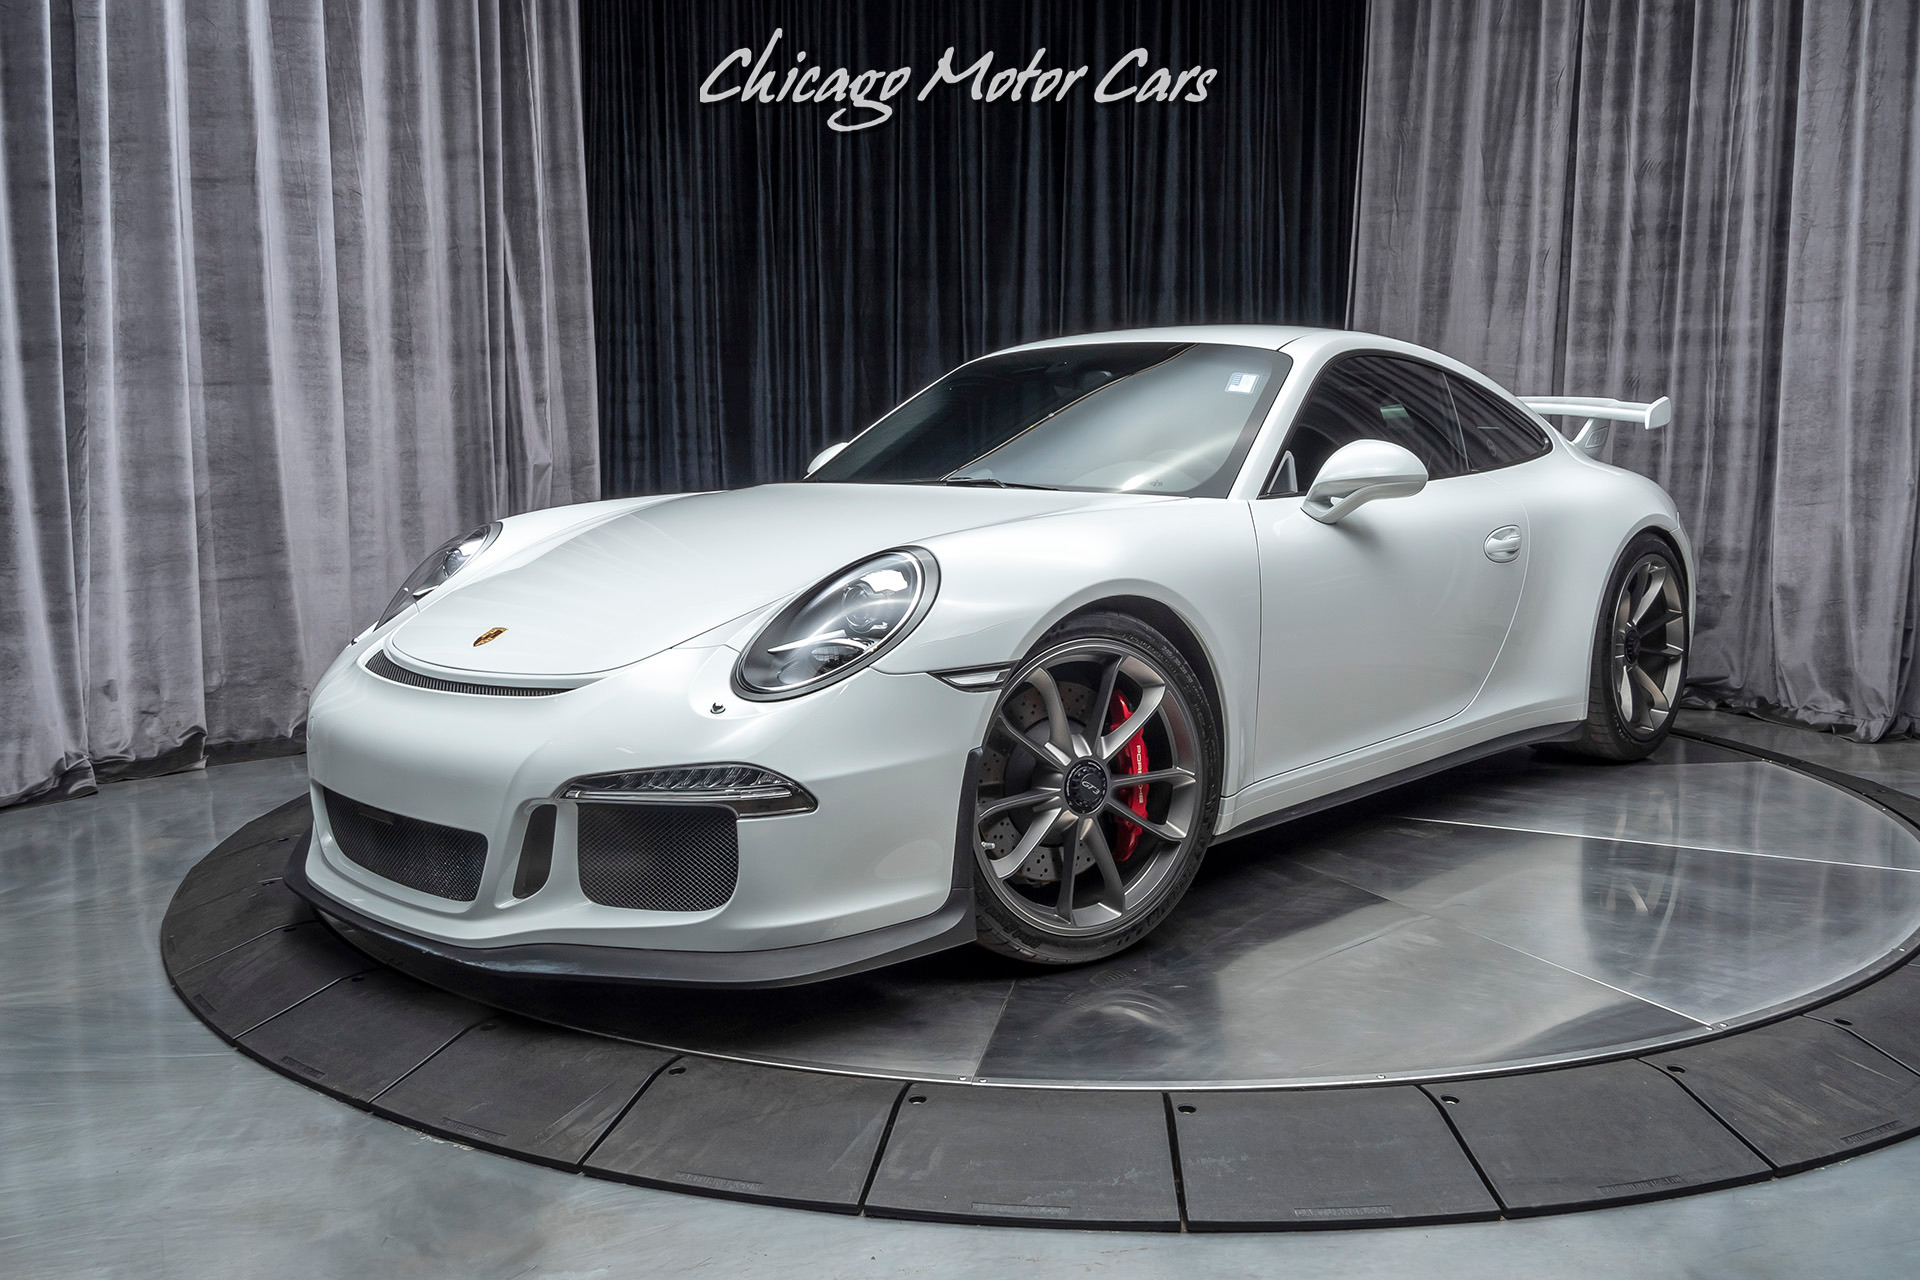 Used 2015 Porsche 911 GT3 Coupe Upgrades! Serviced! Carbon ...